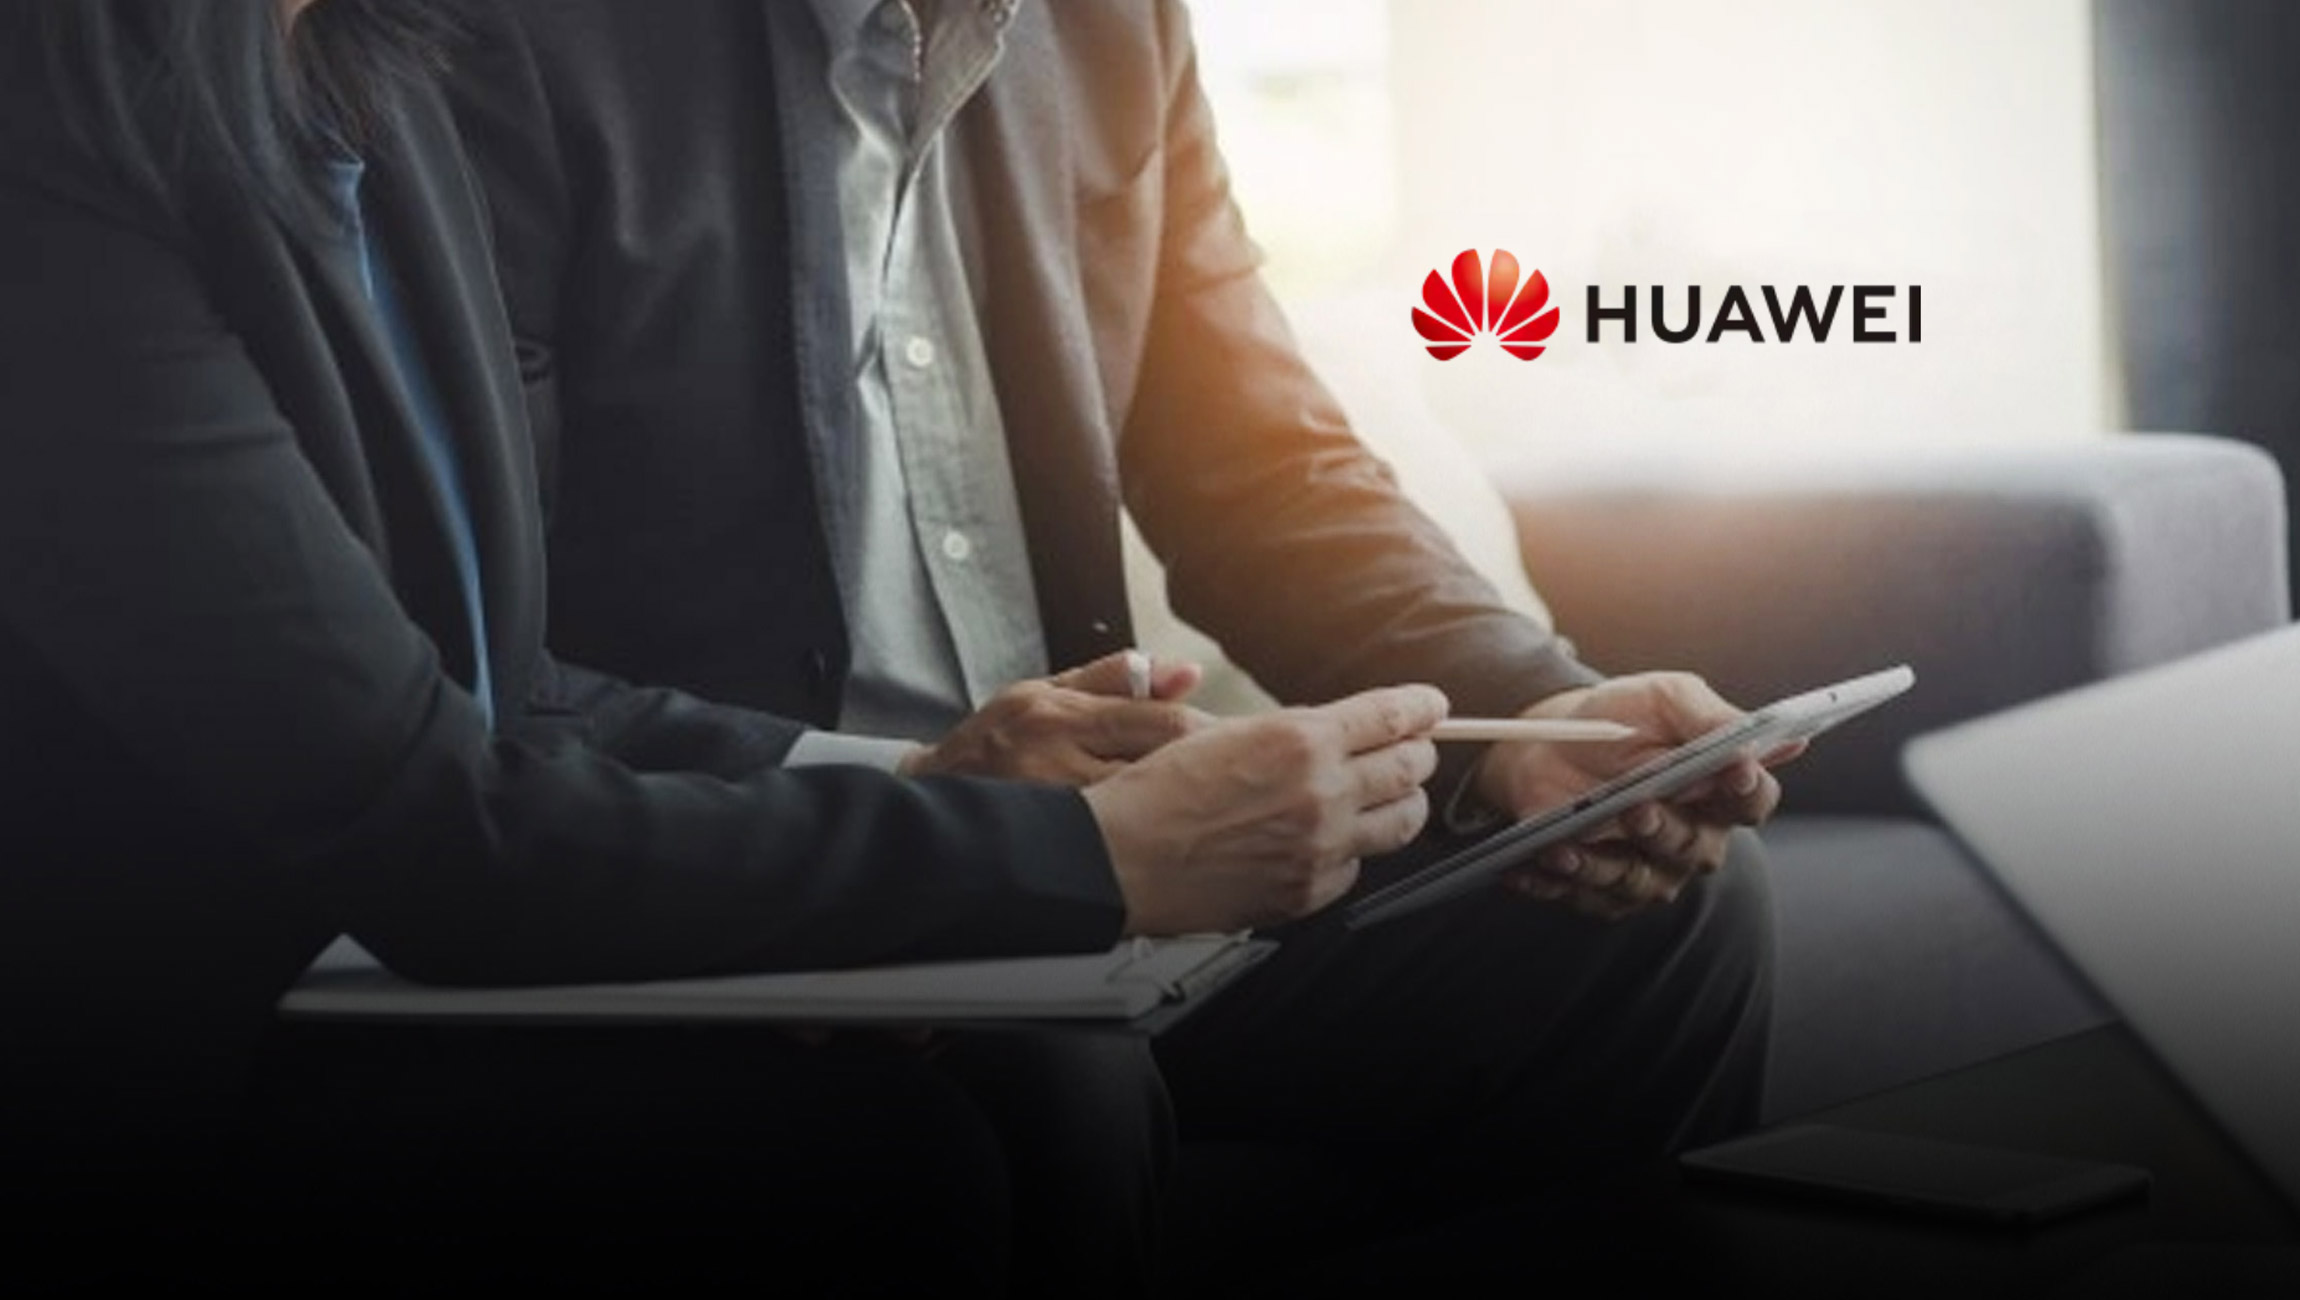 Huawei to Discuss How 5G Can Boost Innovation and Close the Digital Divide